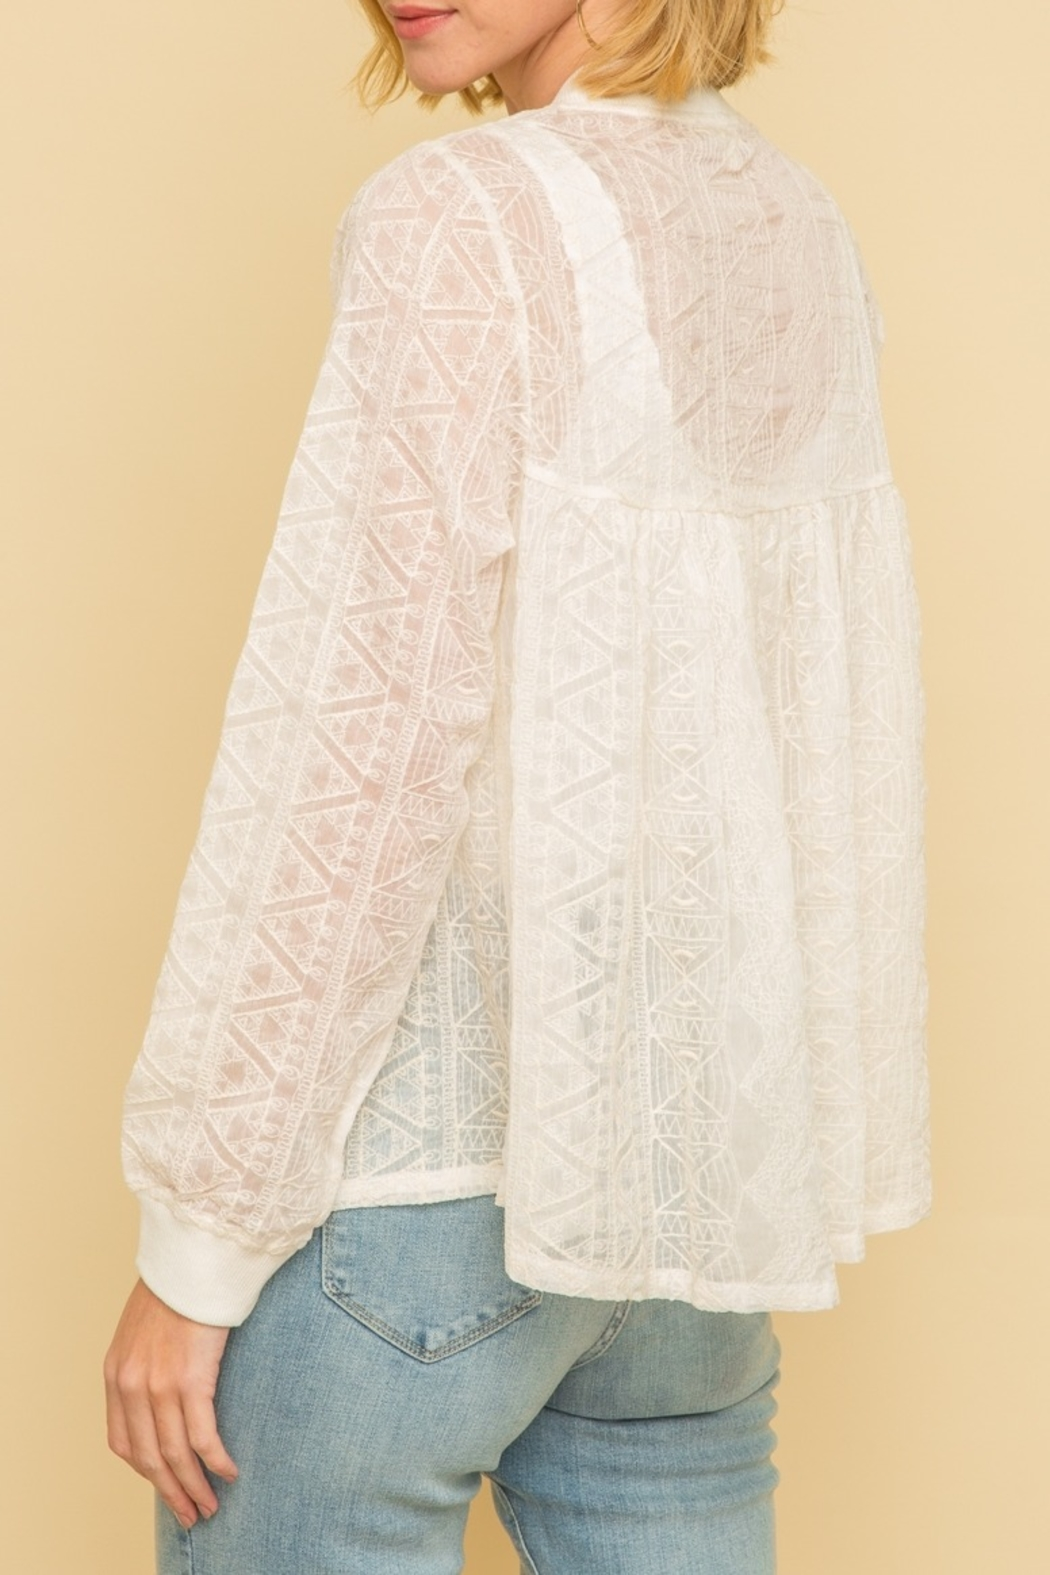 Mystree Emb Lace Bomber Jckt - Front Full Image